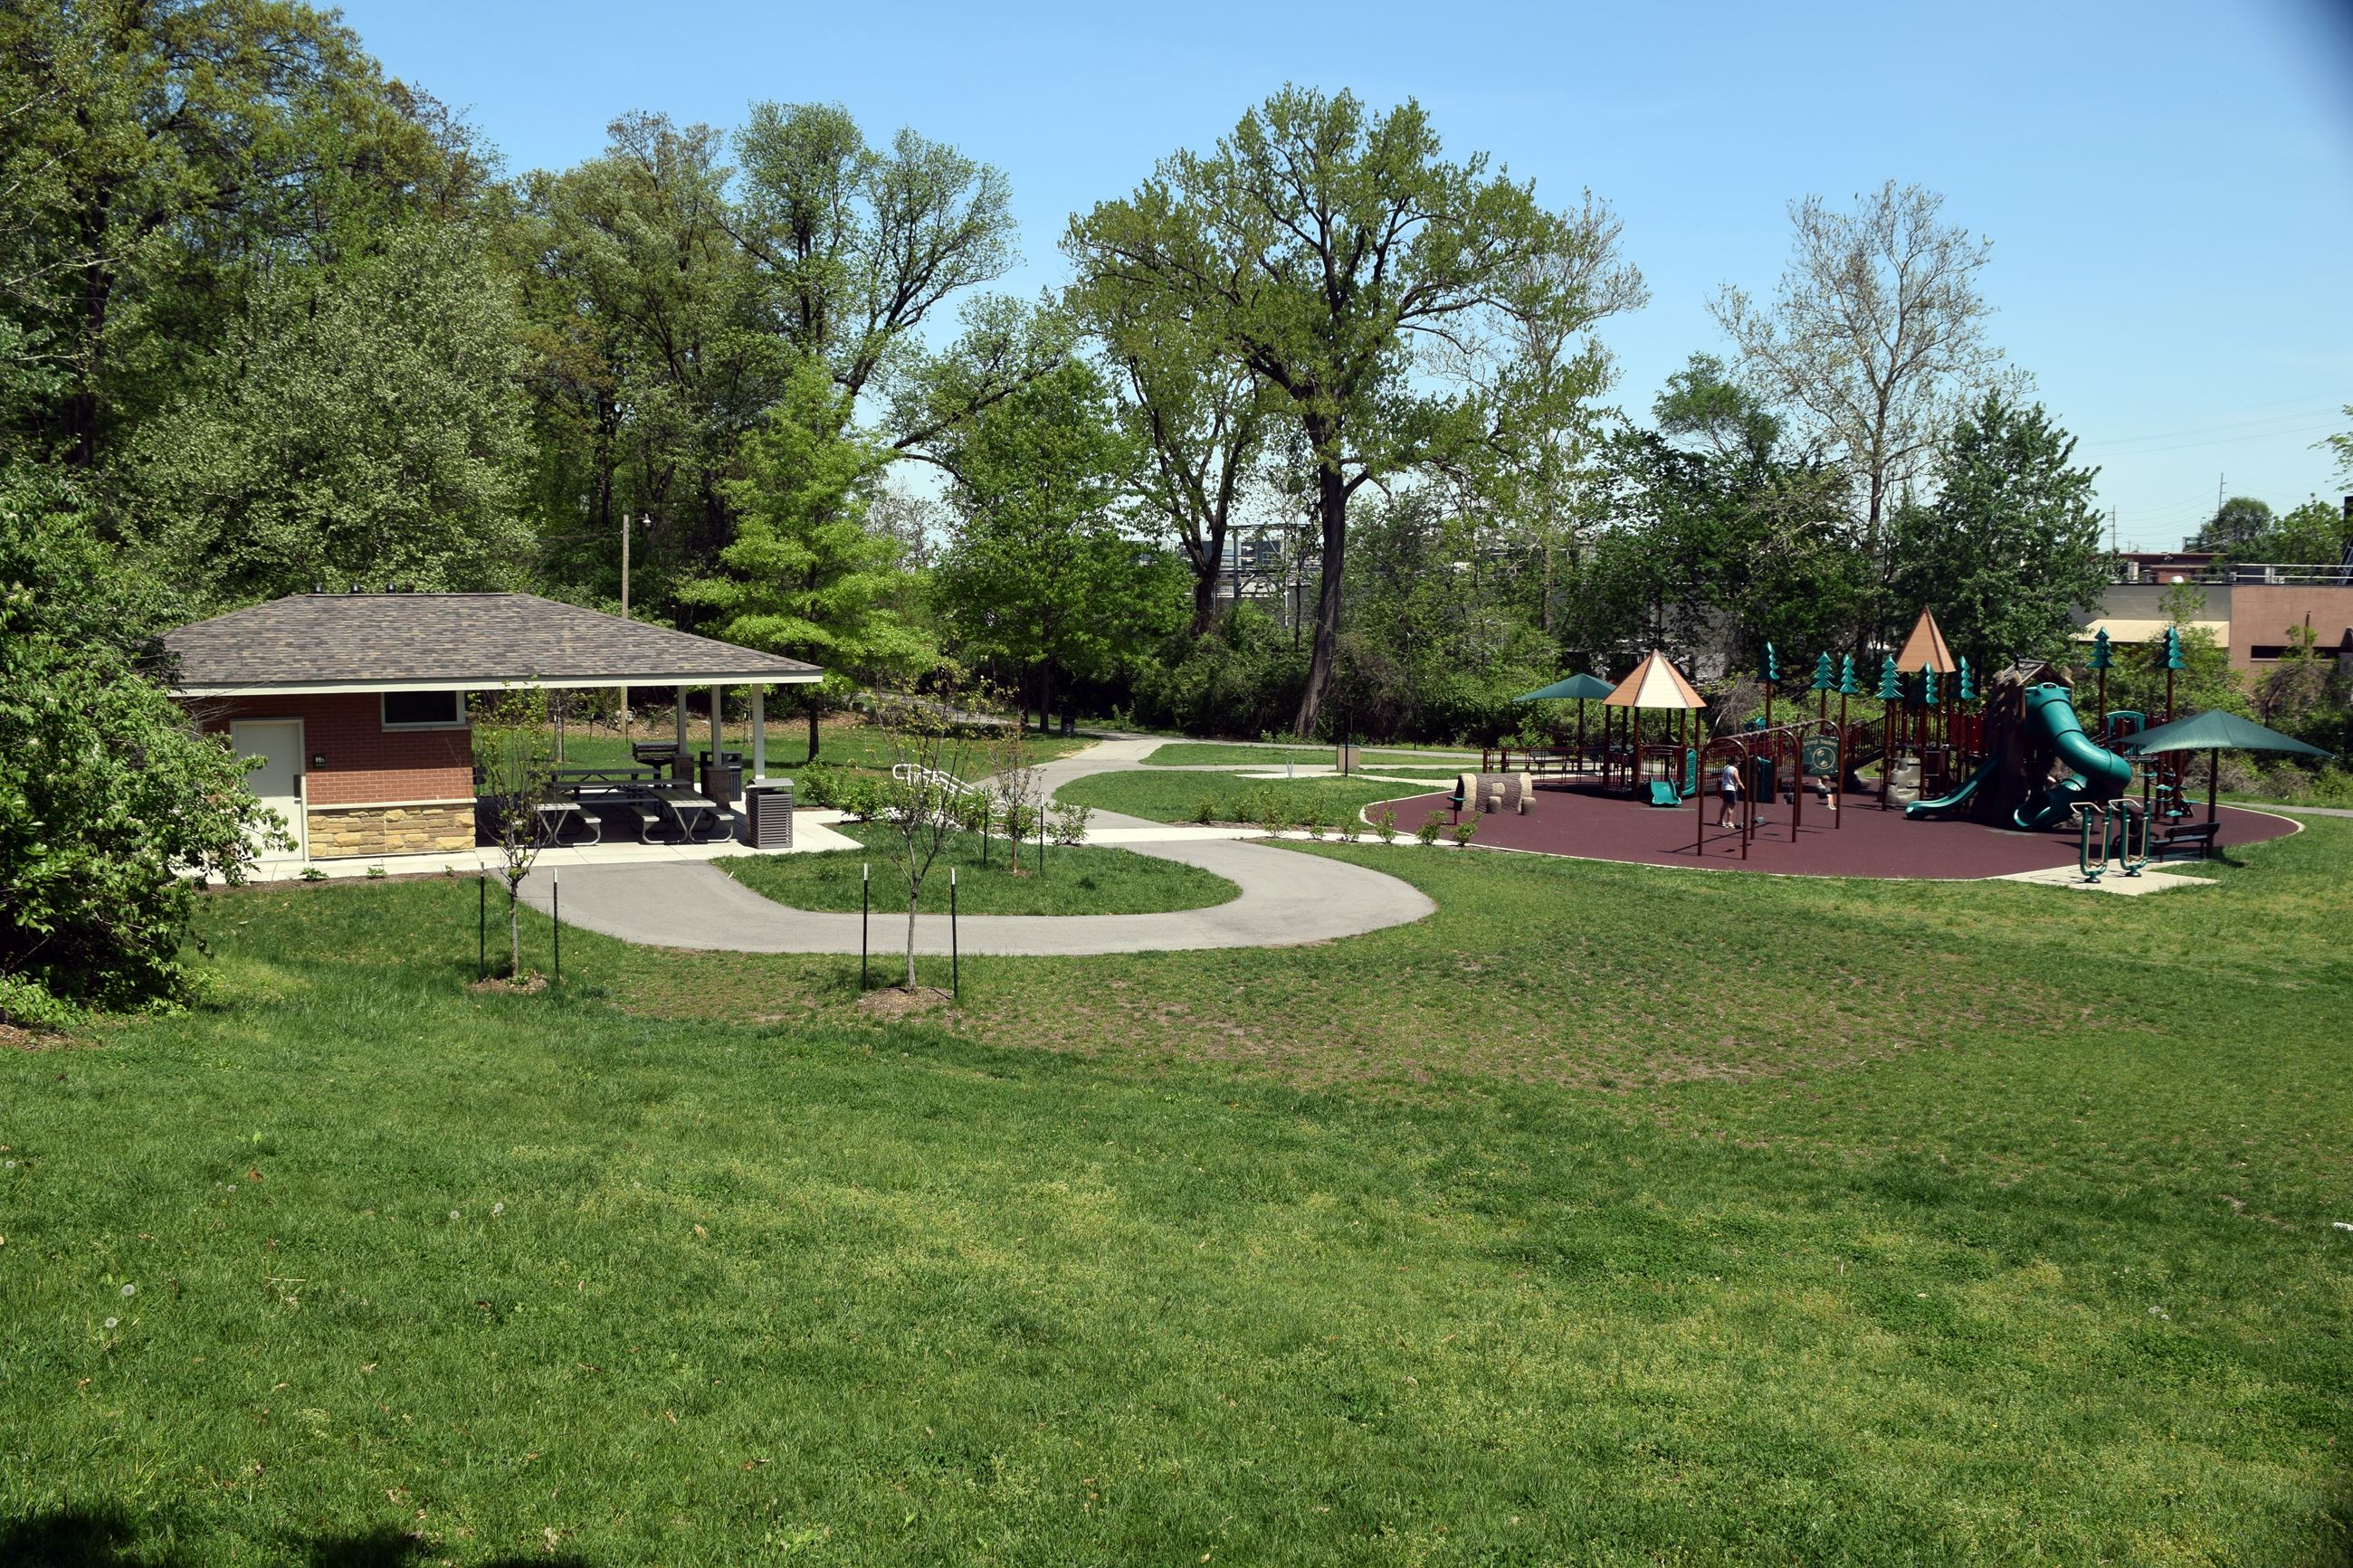 Oak Tree Park Pavilion and Playground